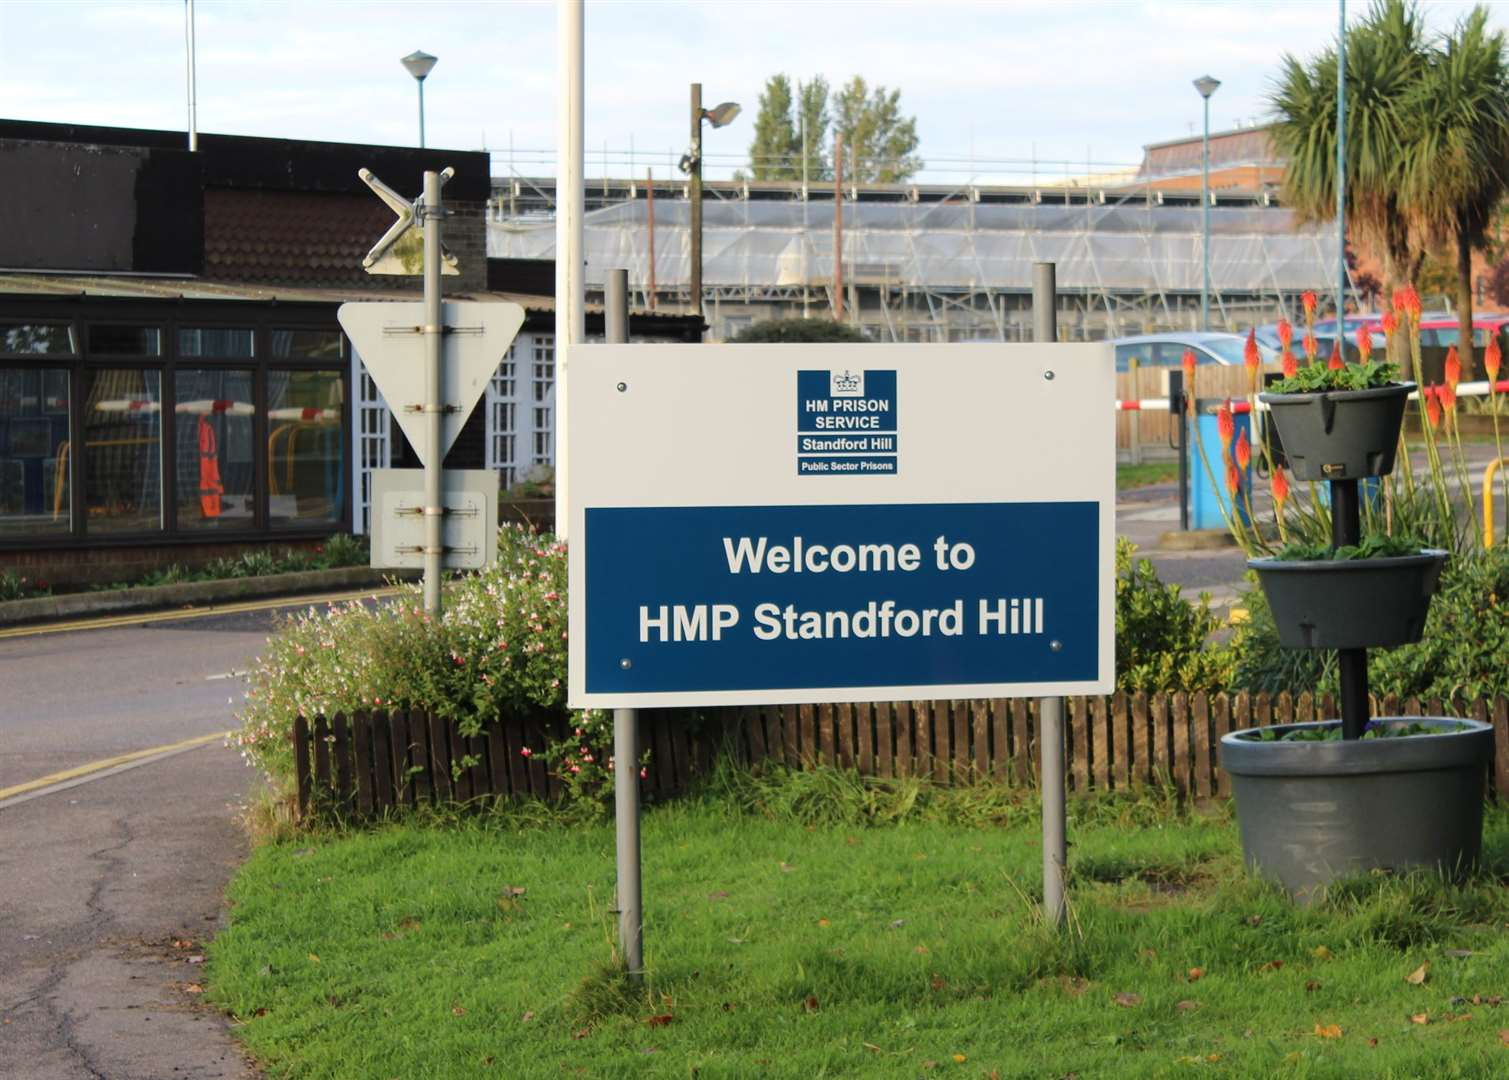 Stanford Hill Open Prison Isle of Sheppey